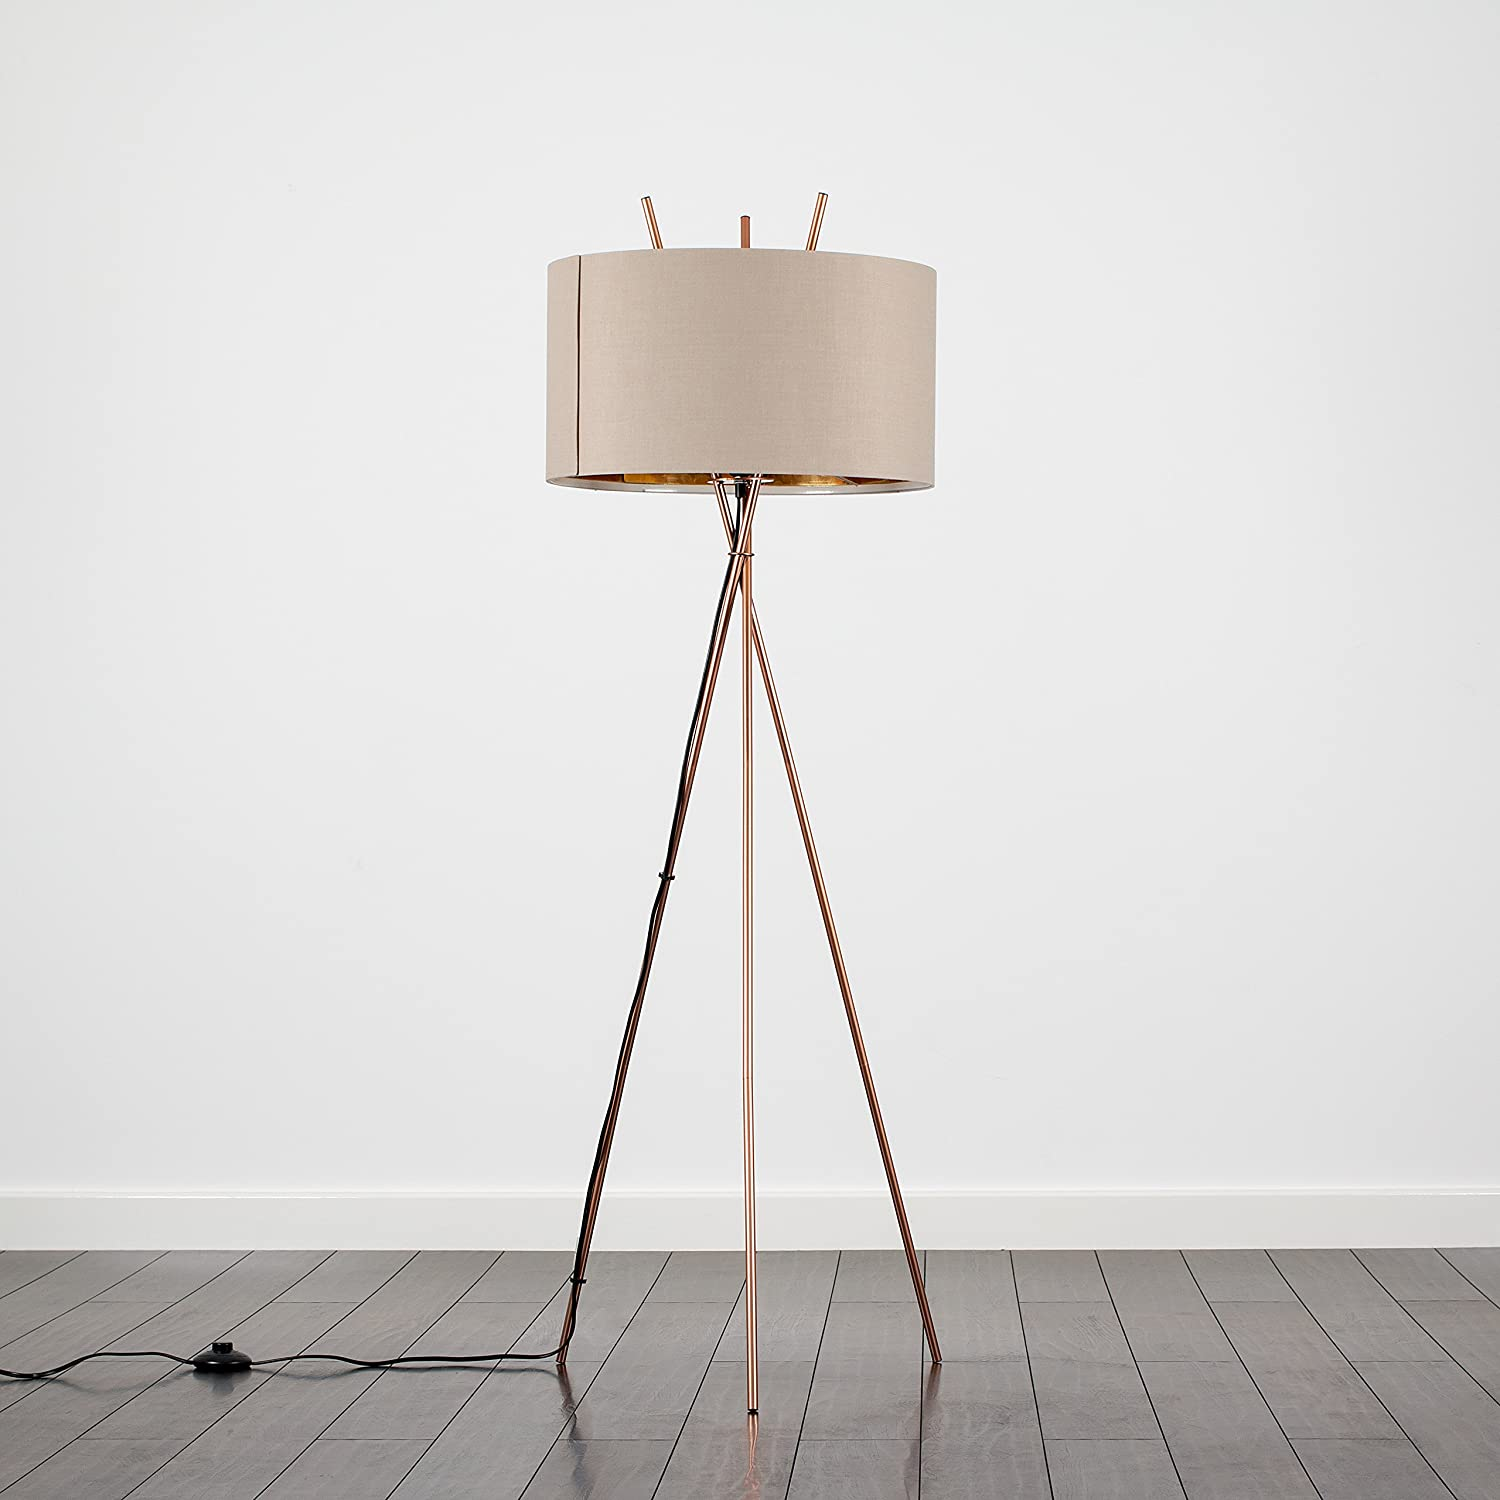 Modern Crossover Design Tripod Floor Lamp in a Copper Finish with a BeigeGold Shade Complete with a 10w LED GLS Bulb [3000K Warm White]